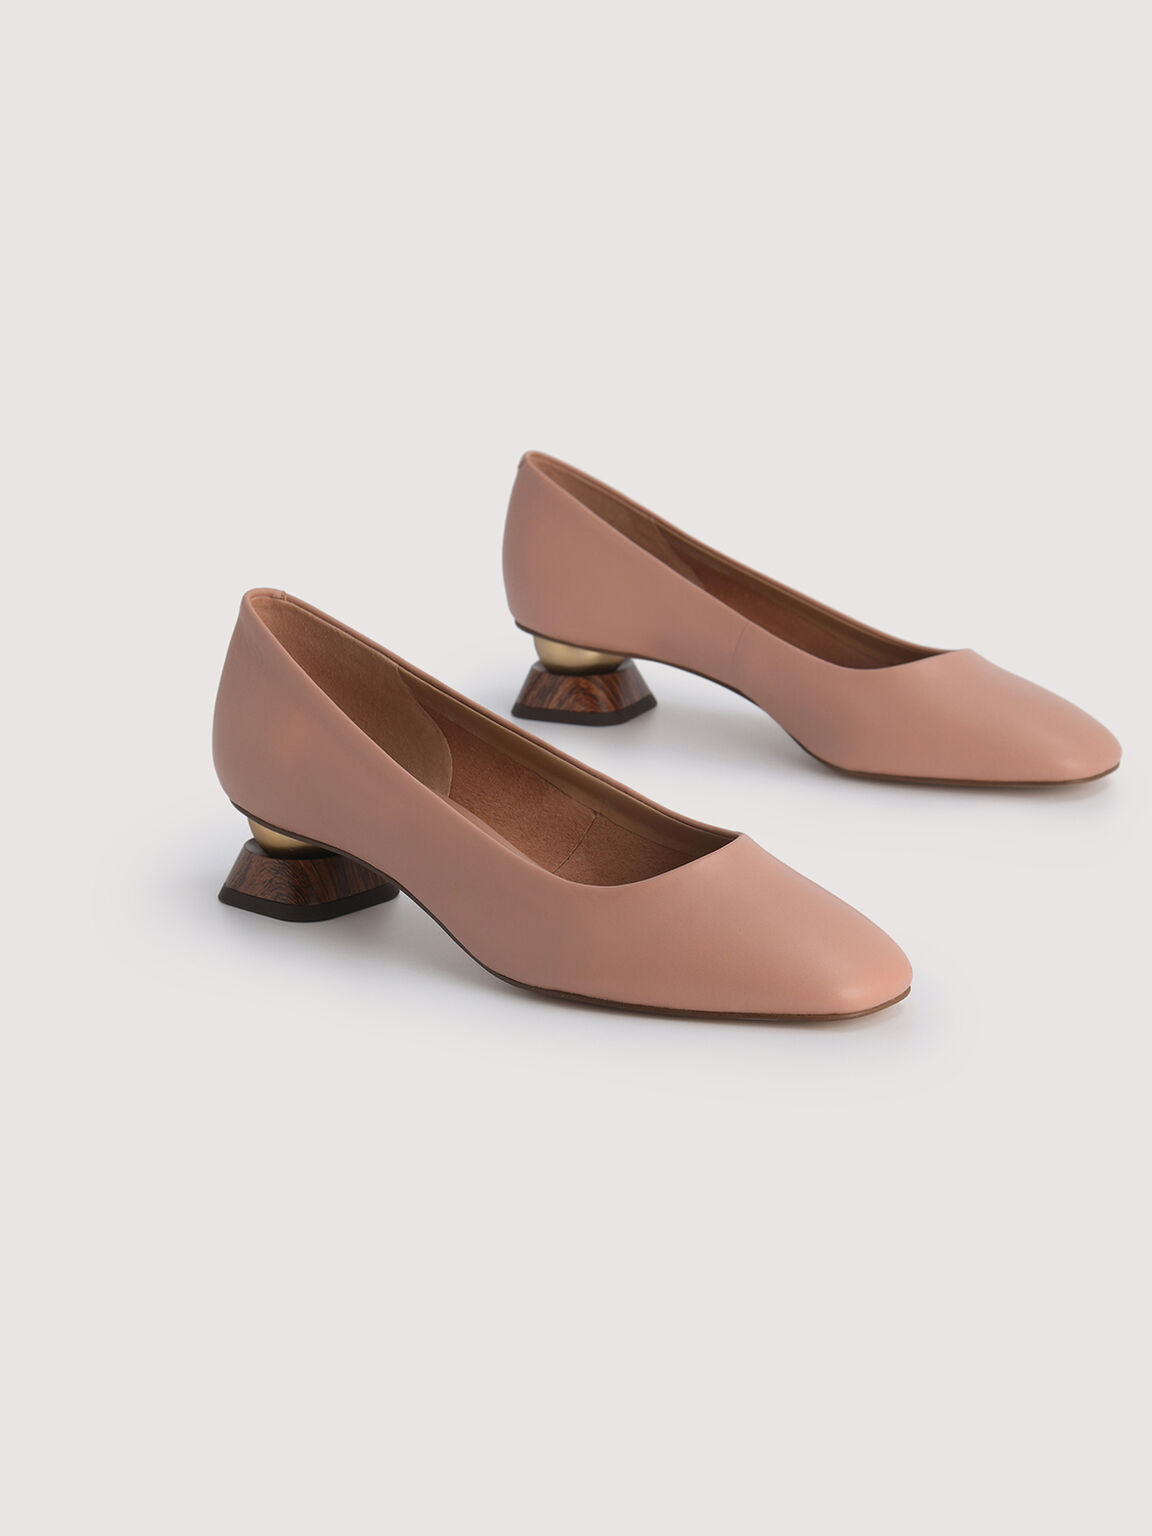 Leather Square Toe Heels, Nude, hi-res